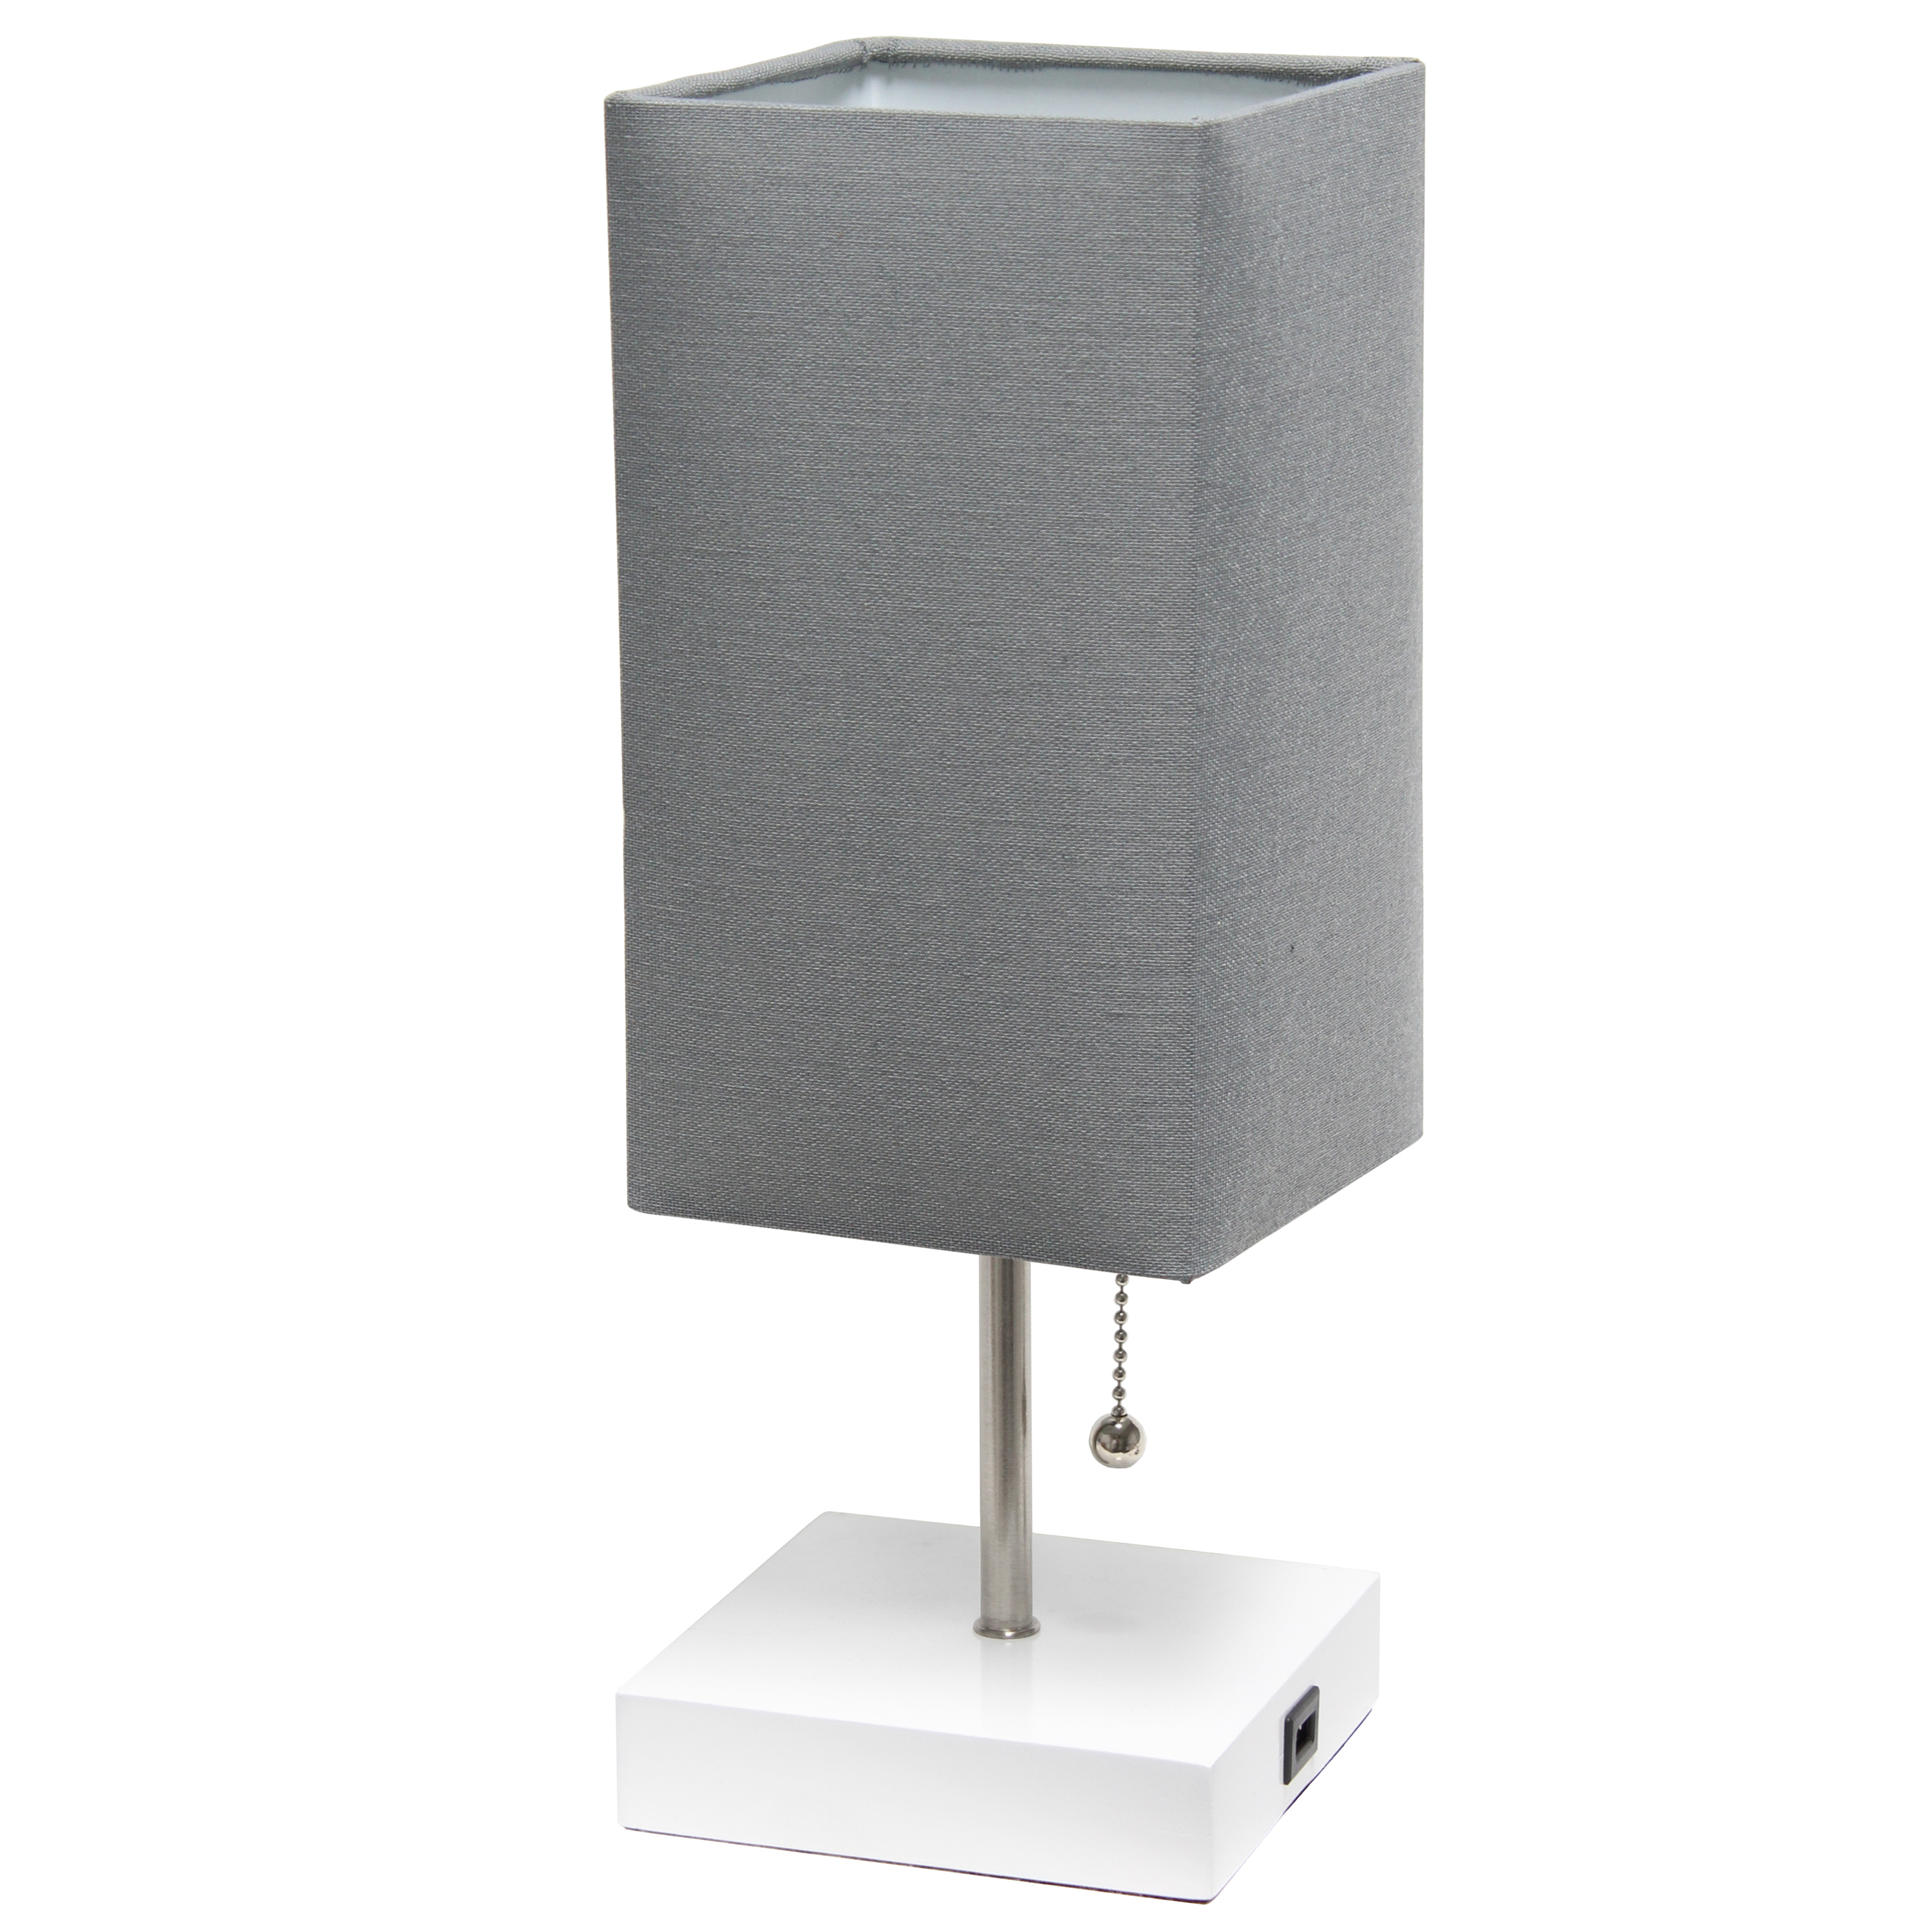 Simple Designs Petite White Stick Lamp with USB Charging Port and Fabric Shade, Gray